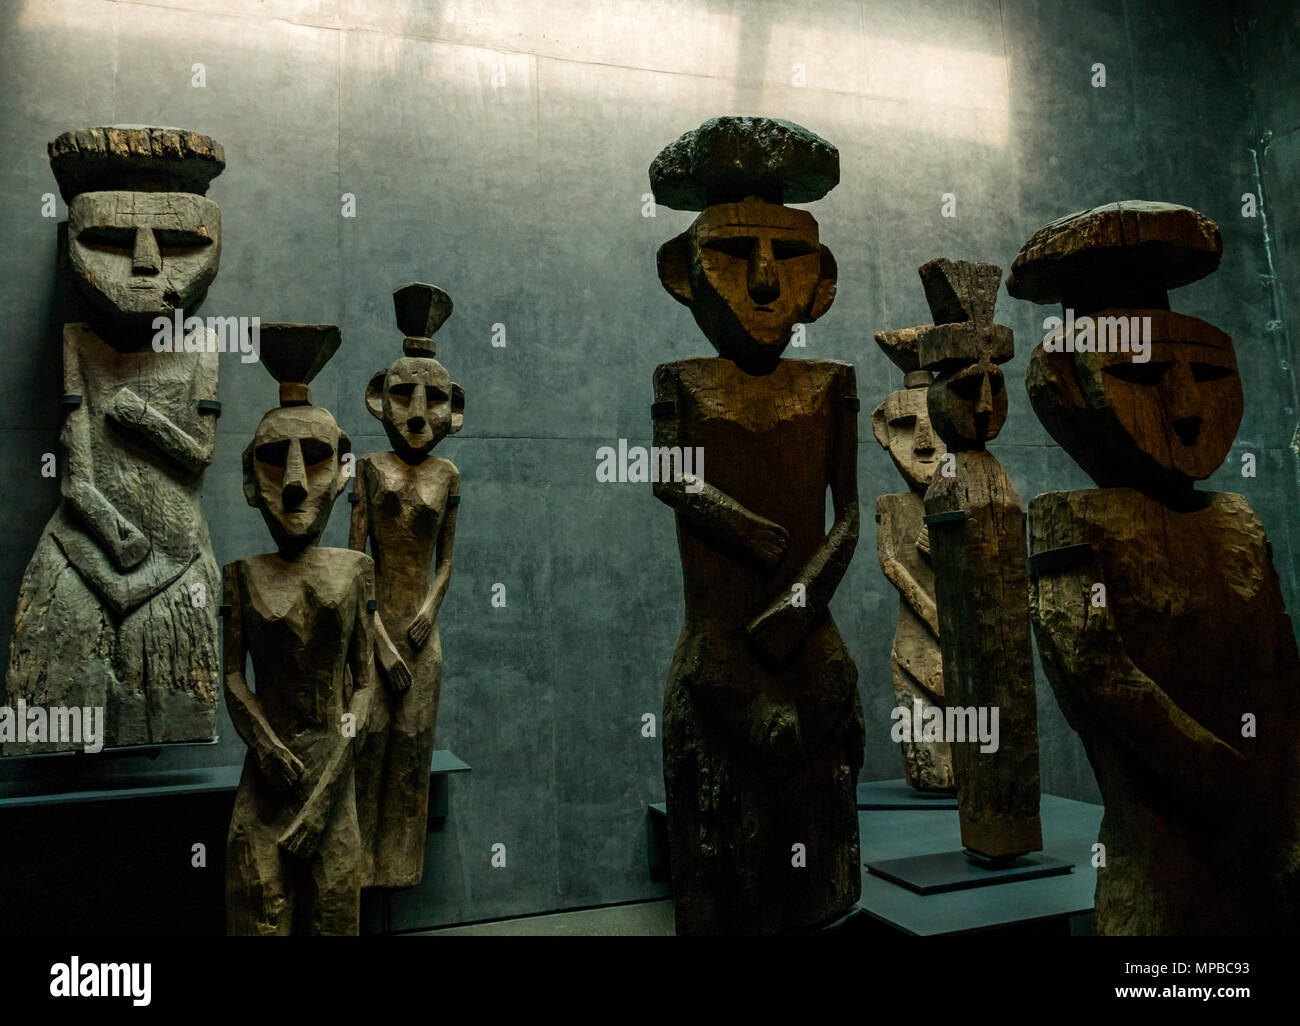 exhibit-in-museum-of-pre-columbiam-art-s